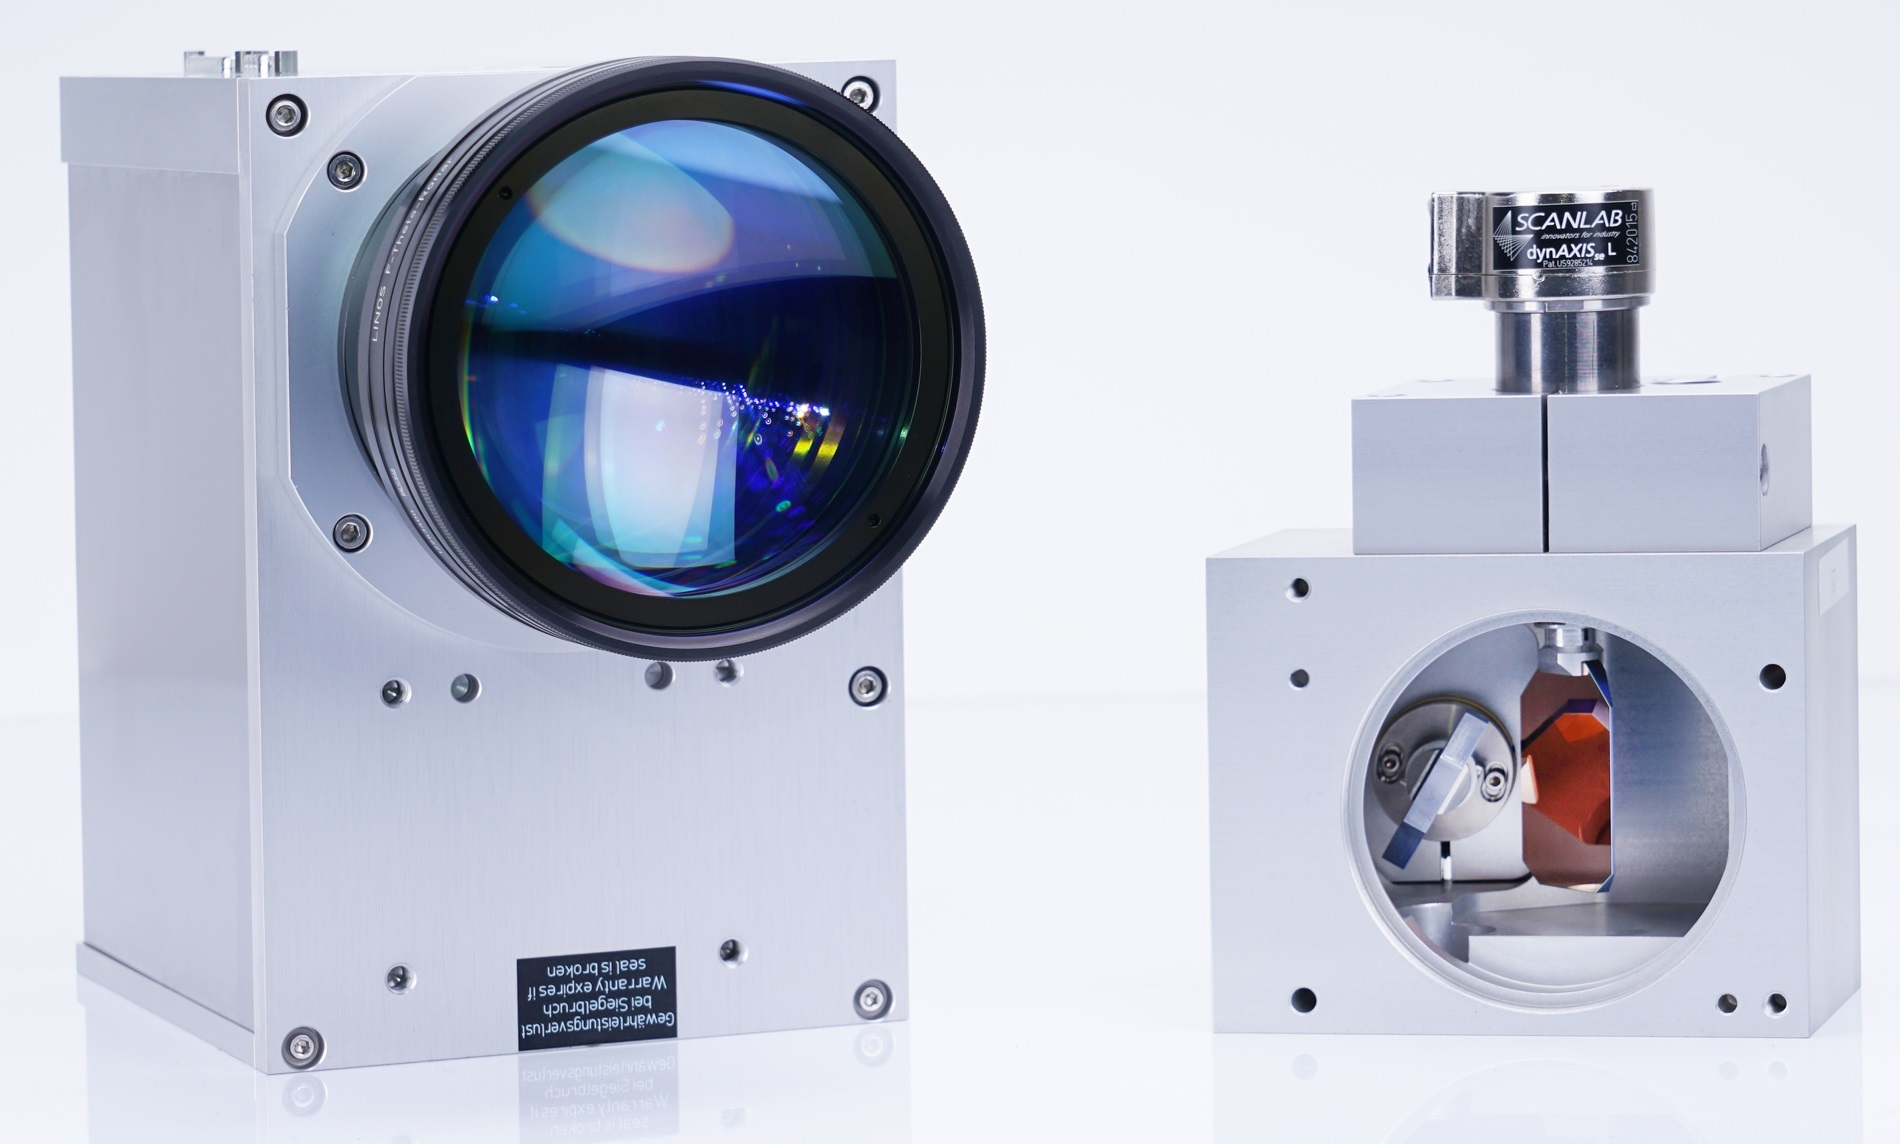 New digital-encoder-equipped 2D scan heads: intelliSCANse 20 and 30